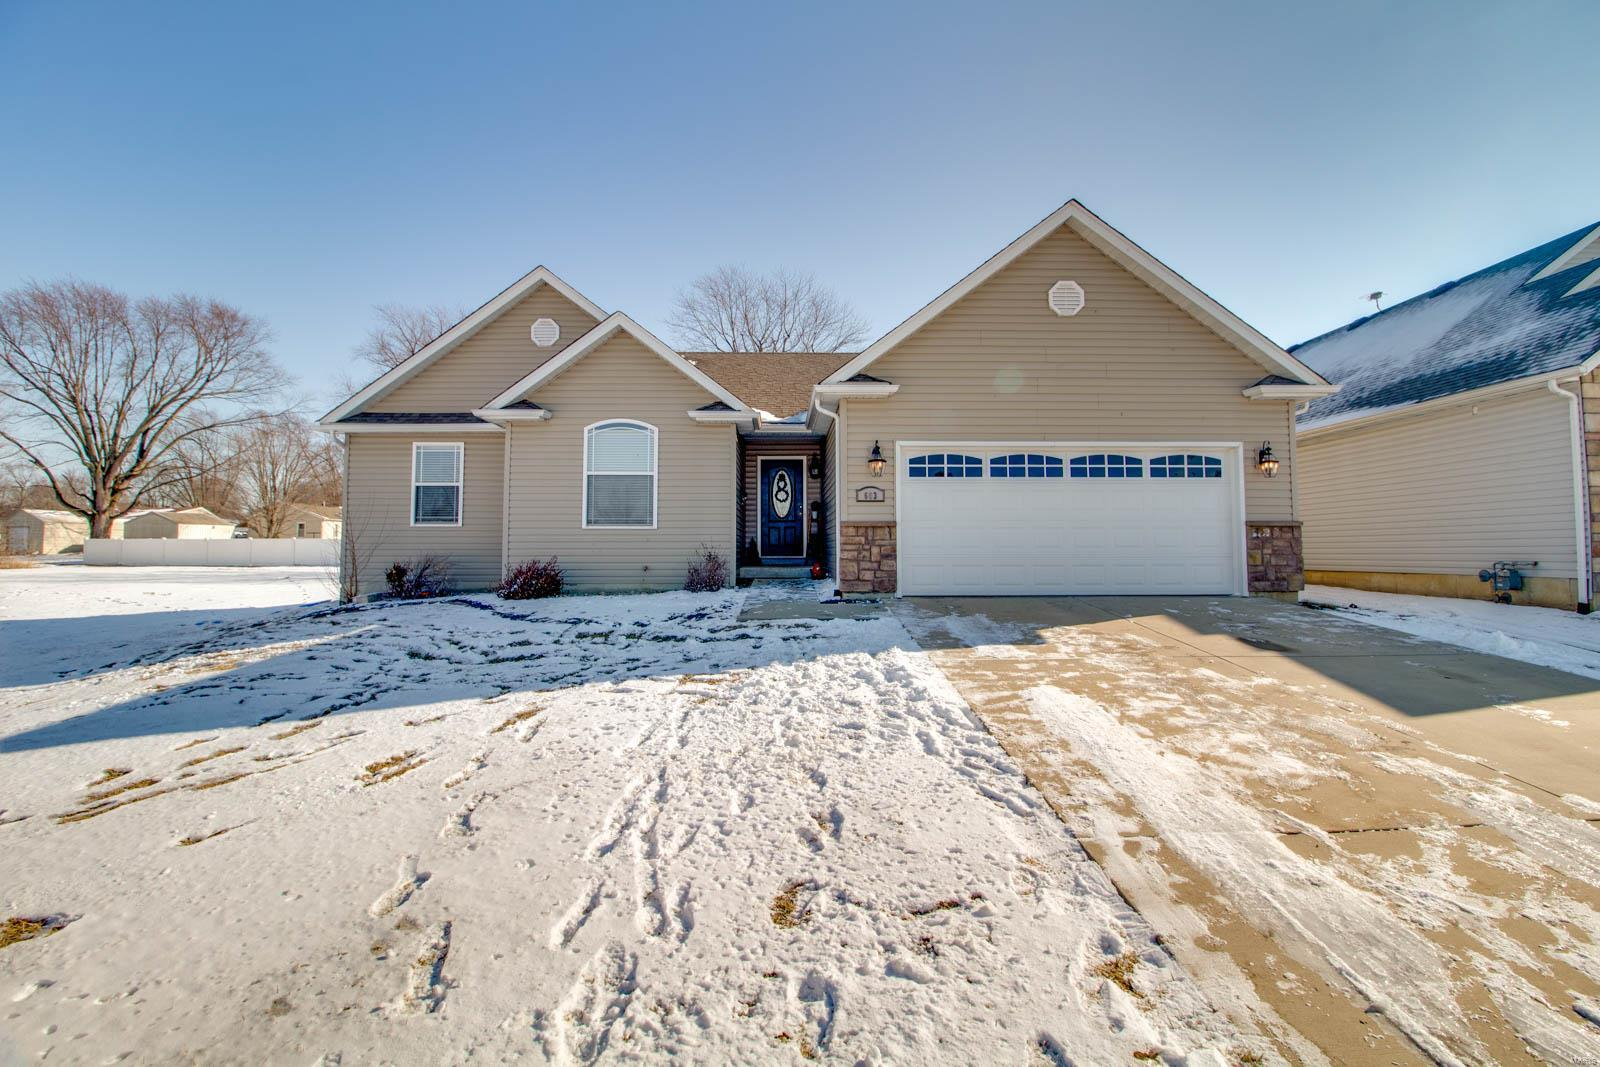 603 Tradewinds Property Photo - Jerseyville, IL real estate listing